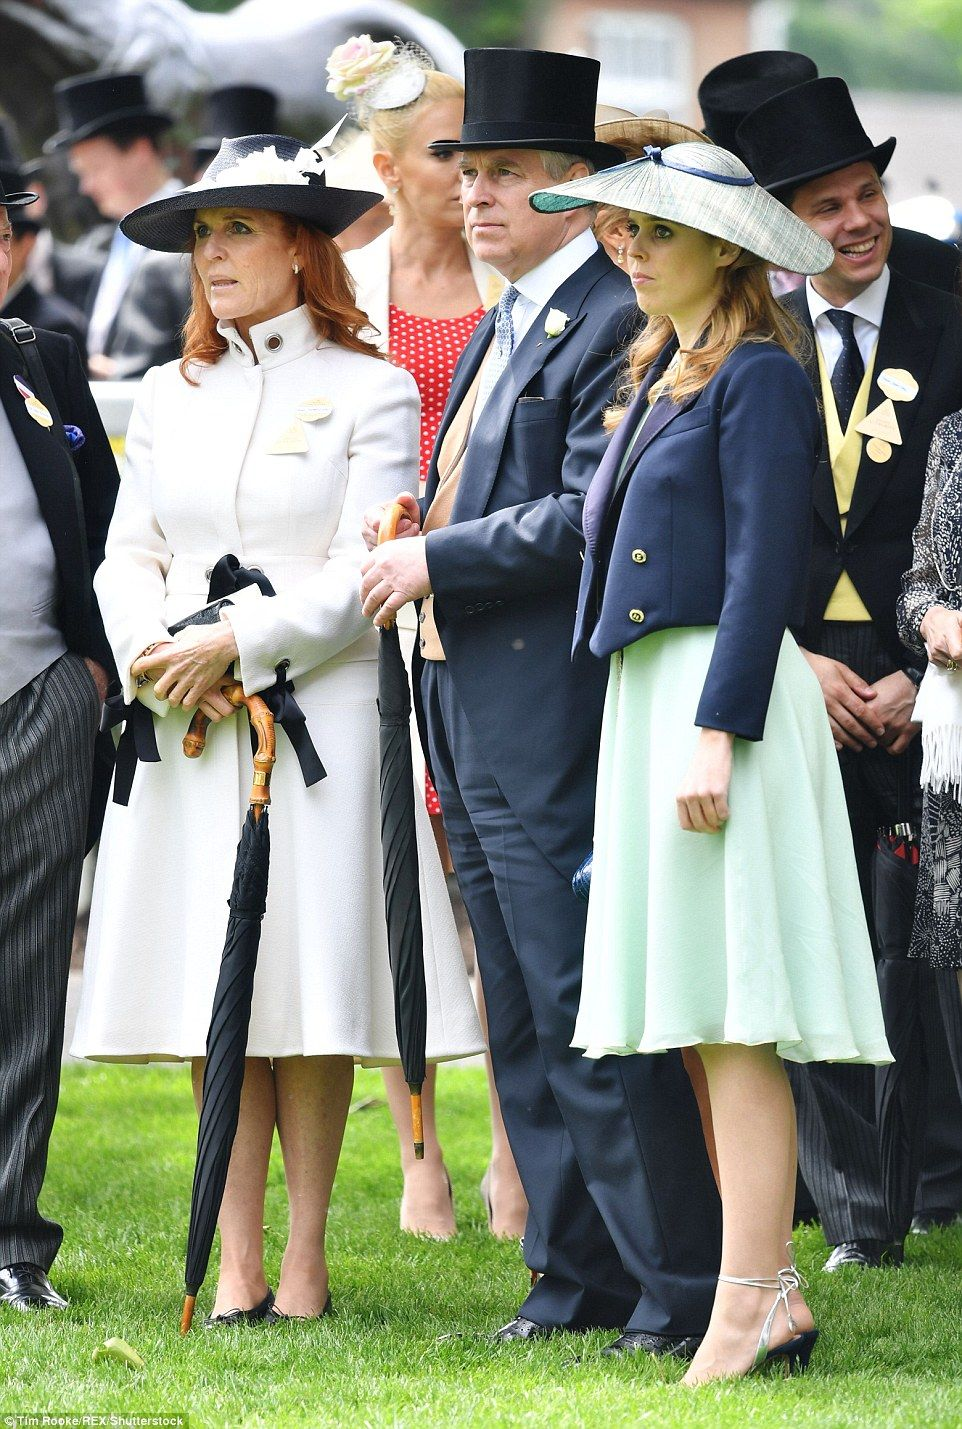 Fergie is excited to greet the Queen at Royal Ascot